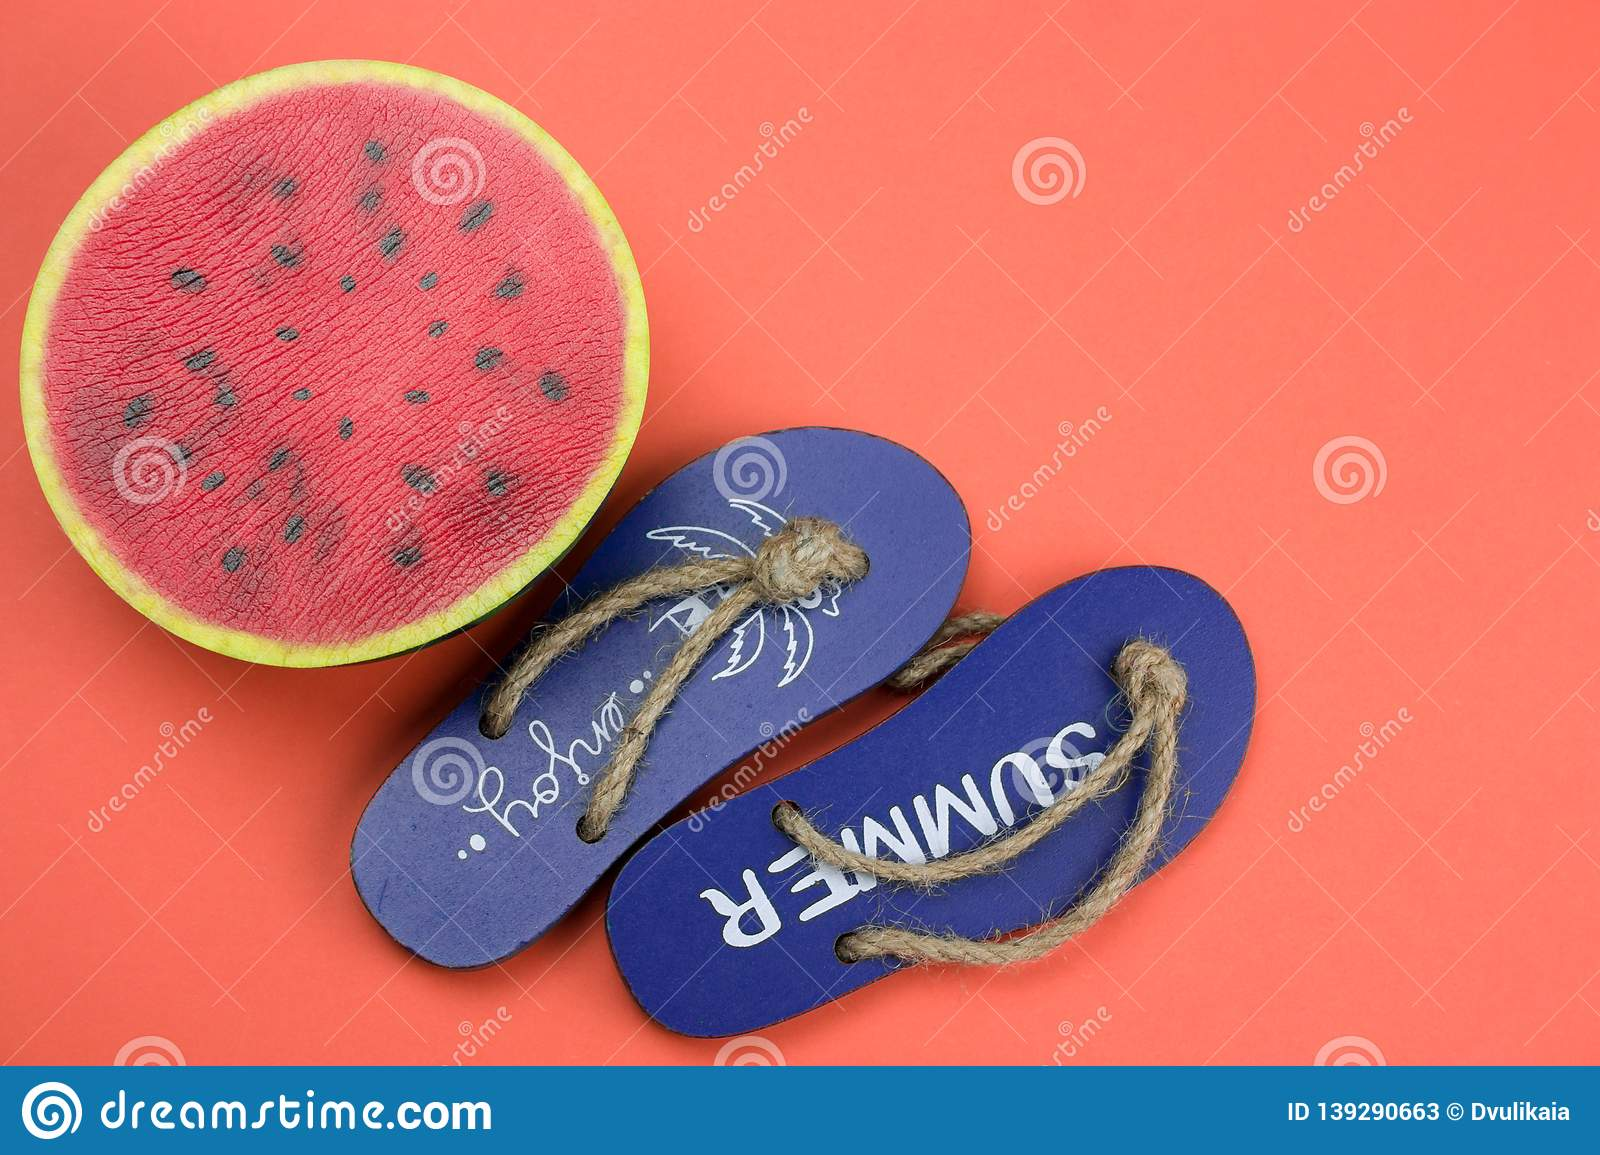 6639966fbab decorative wooden flip flops and squishy toy watermelon on a coral  background copy space